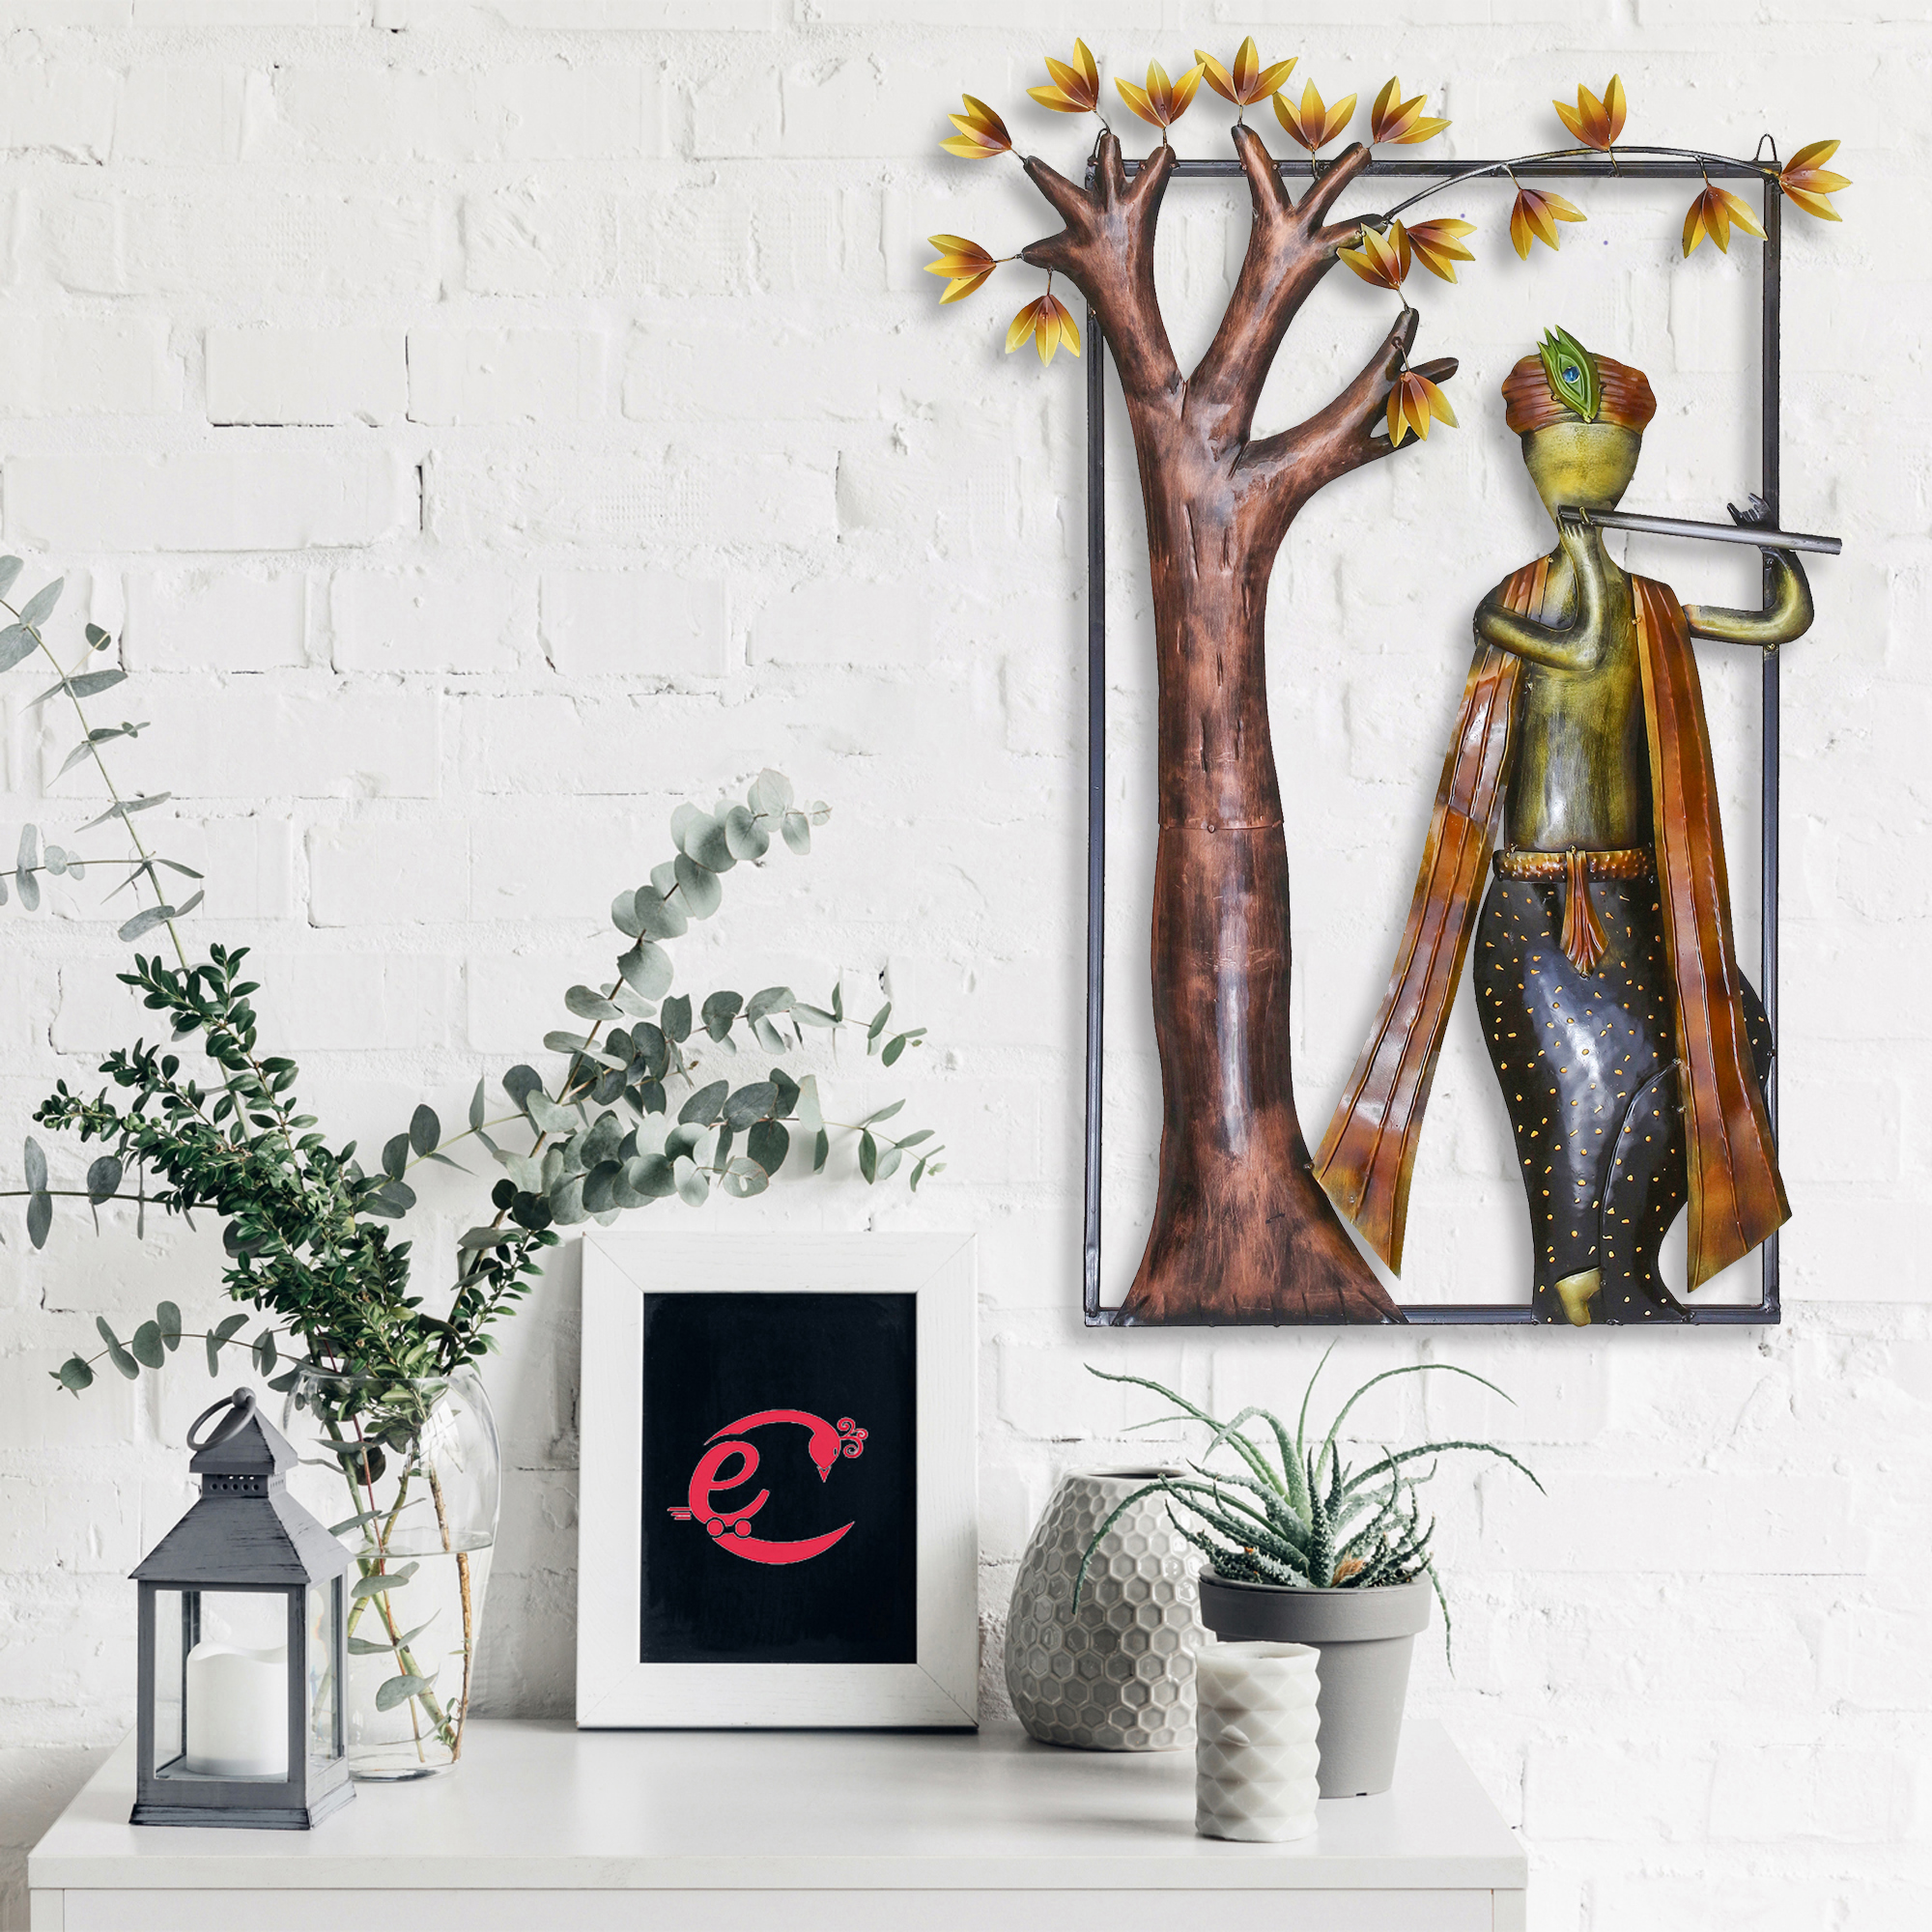 Lord Krishna Playing Flute Under Tree Handcrafted Iron Wall Hanging Indian Home Decor